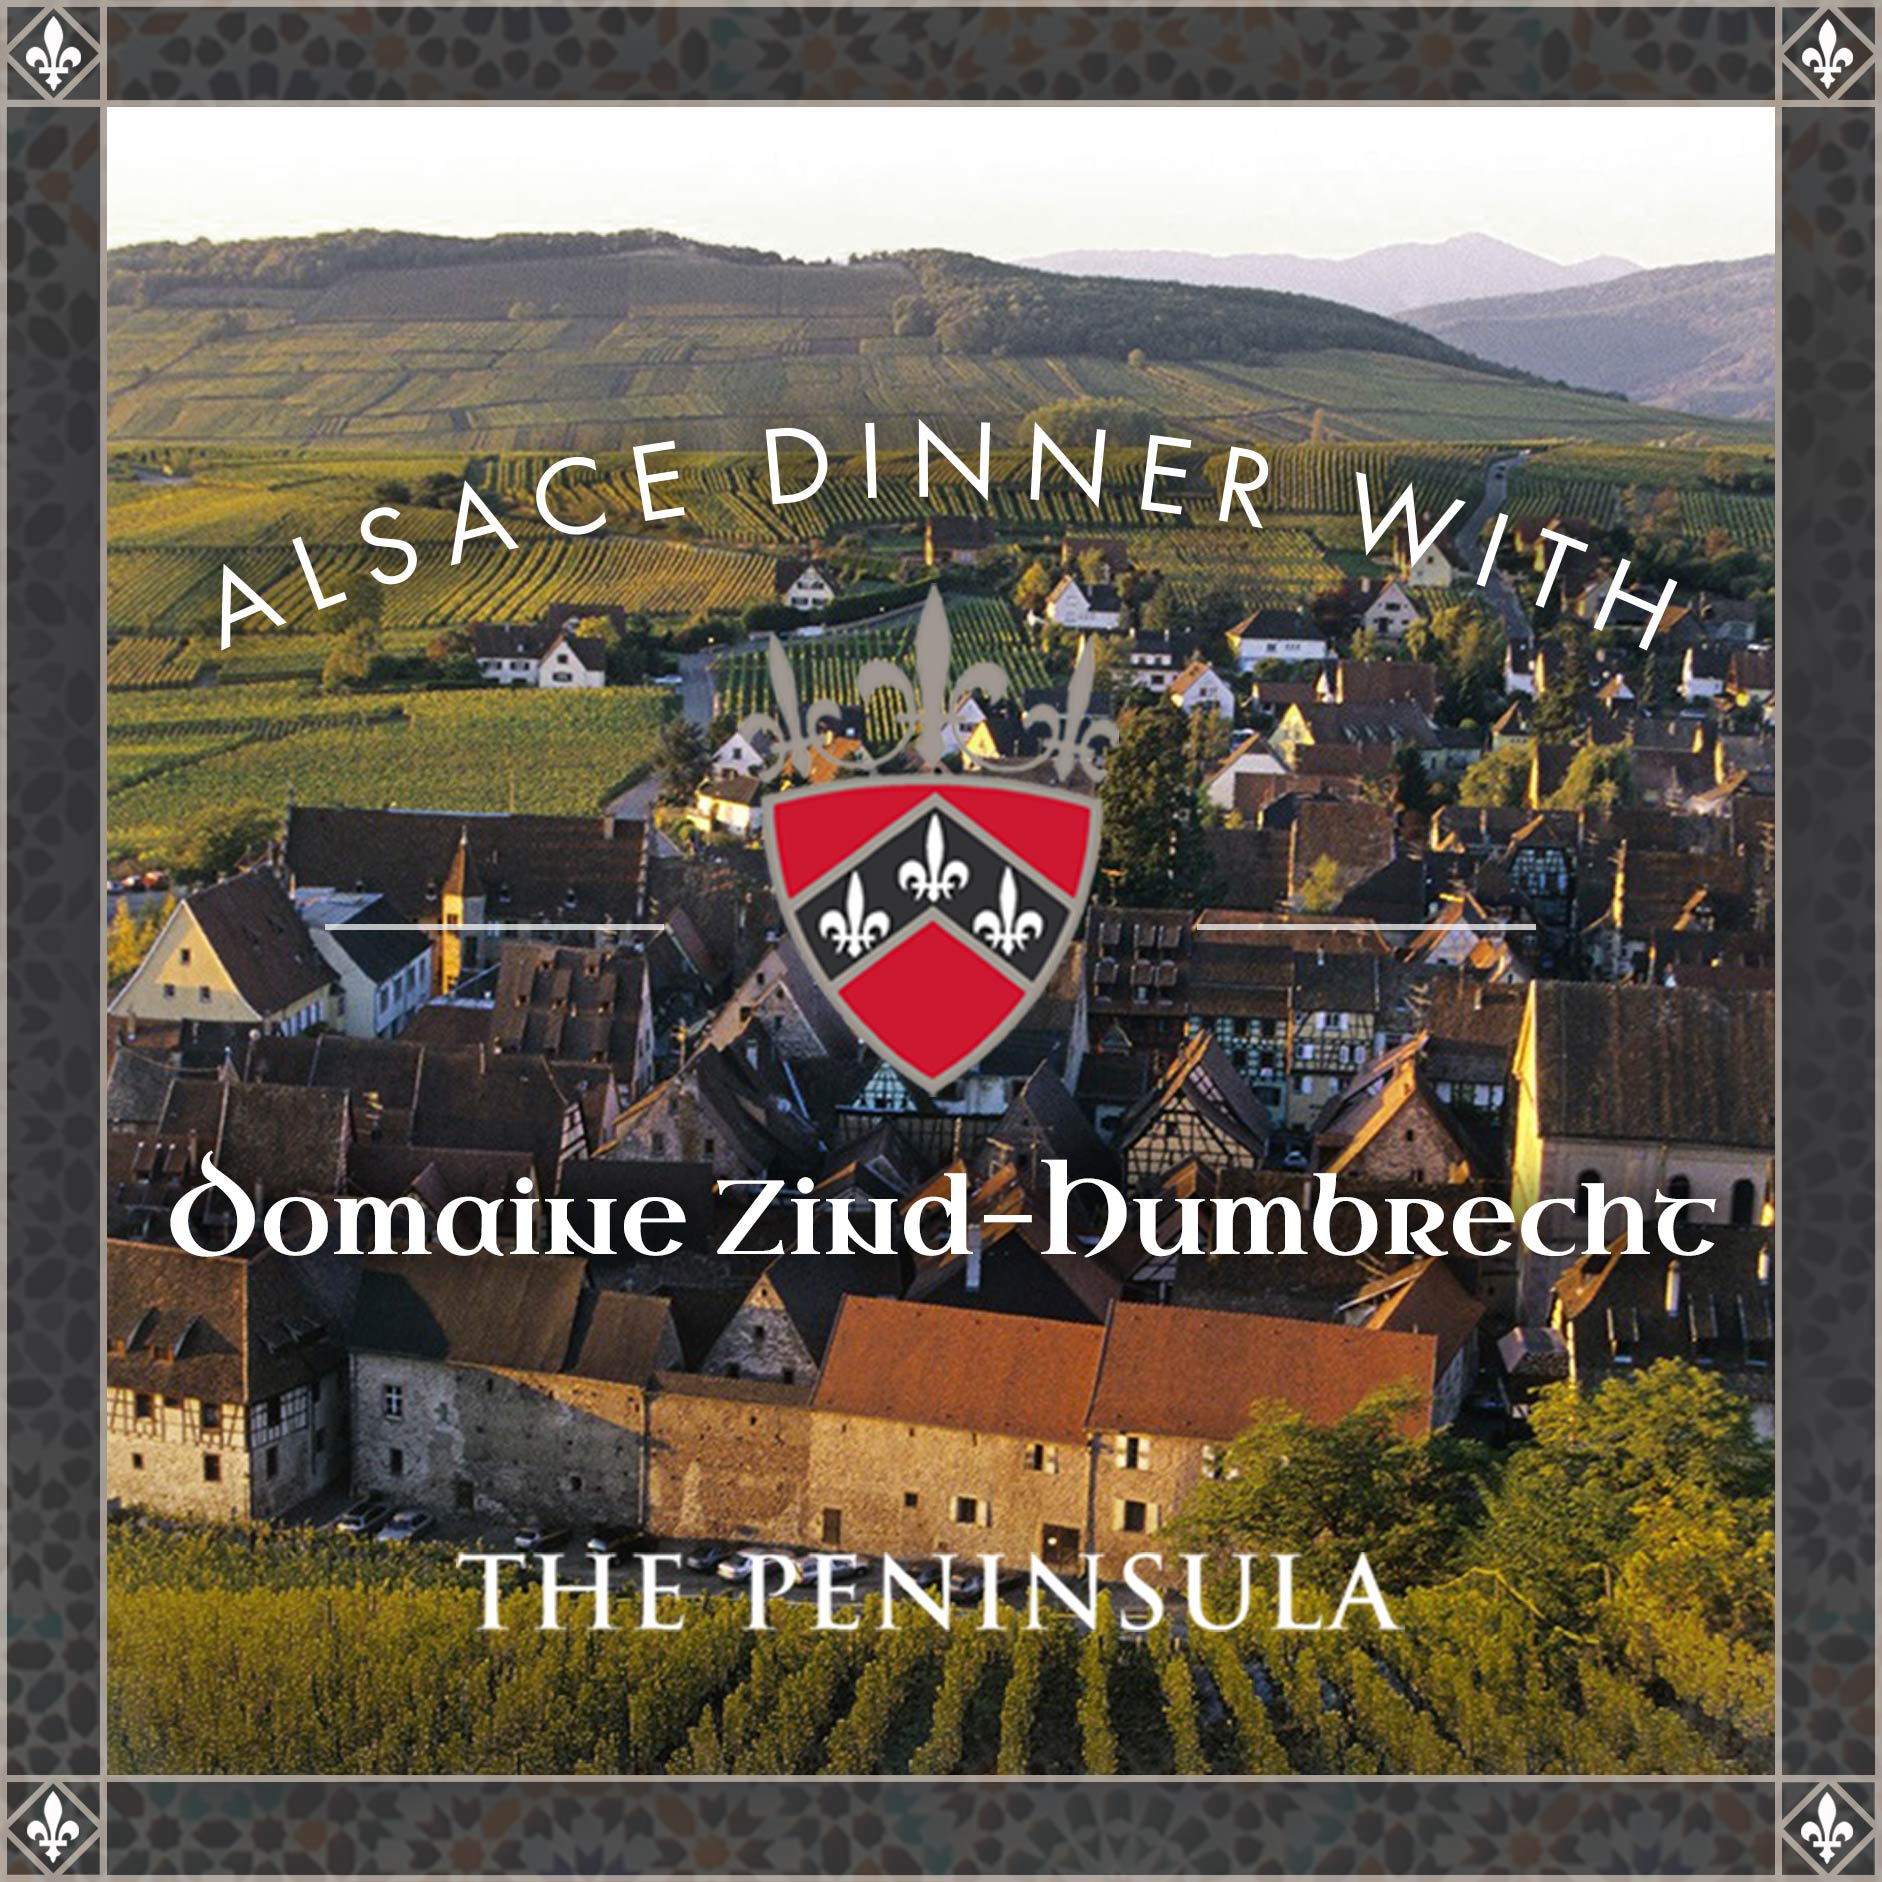 Alsace Dinner with Domaine Zind-Humbrecht Peninsula Beverly Hills   June 8, 2018